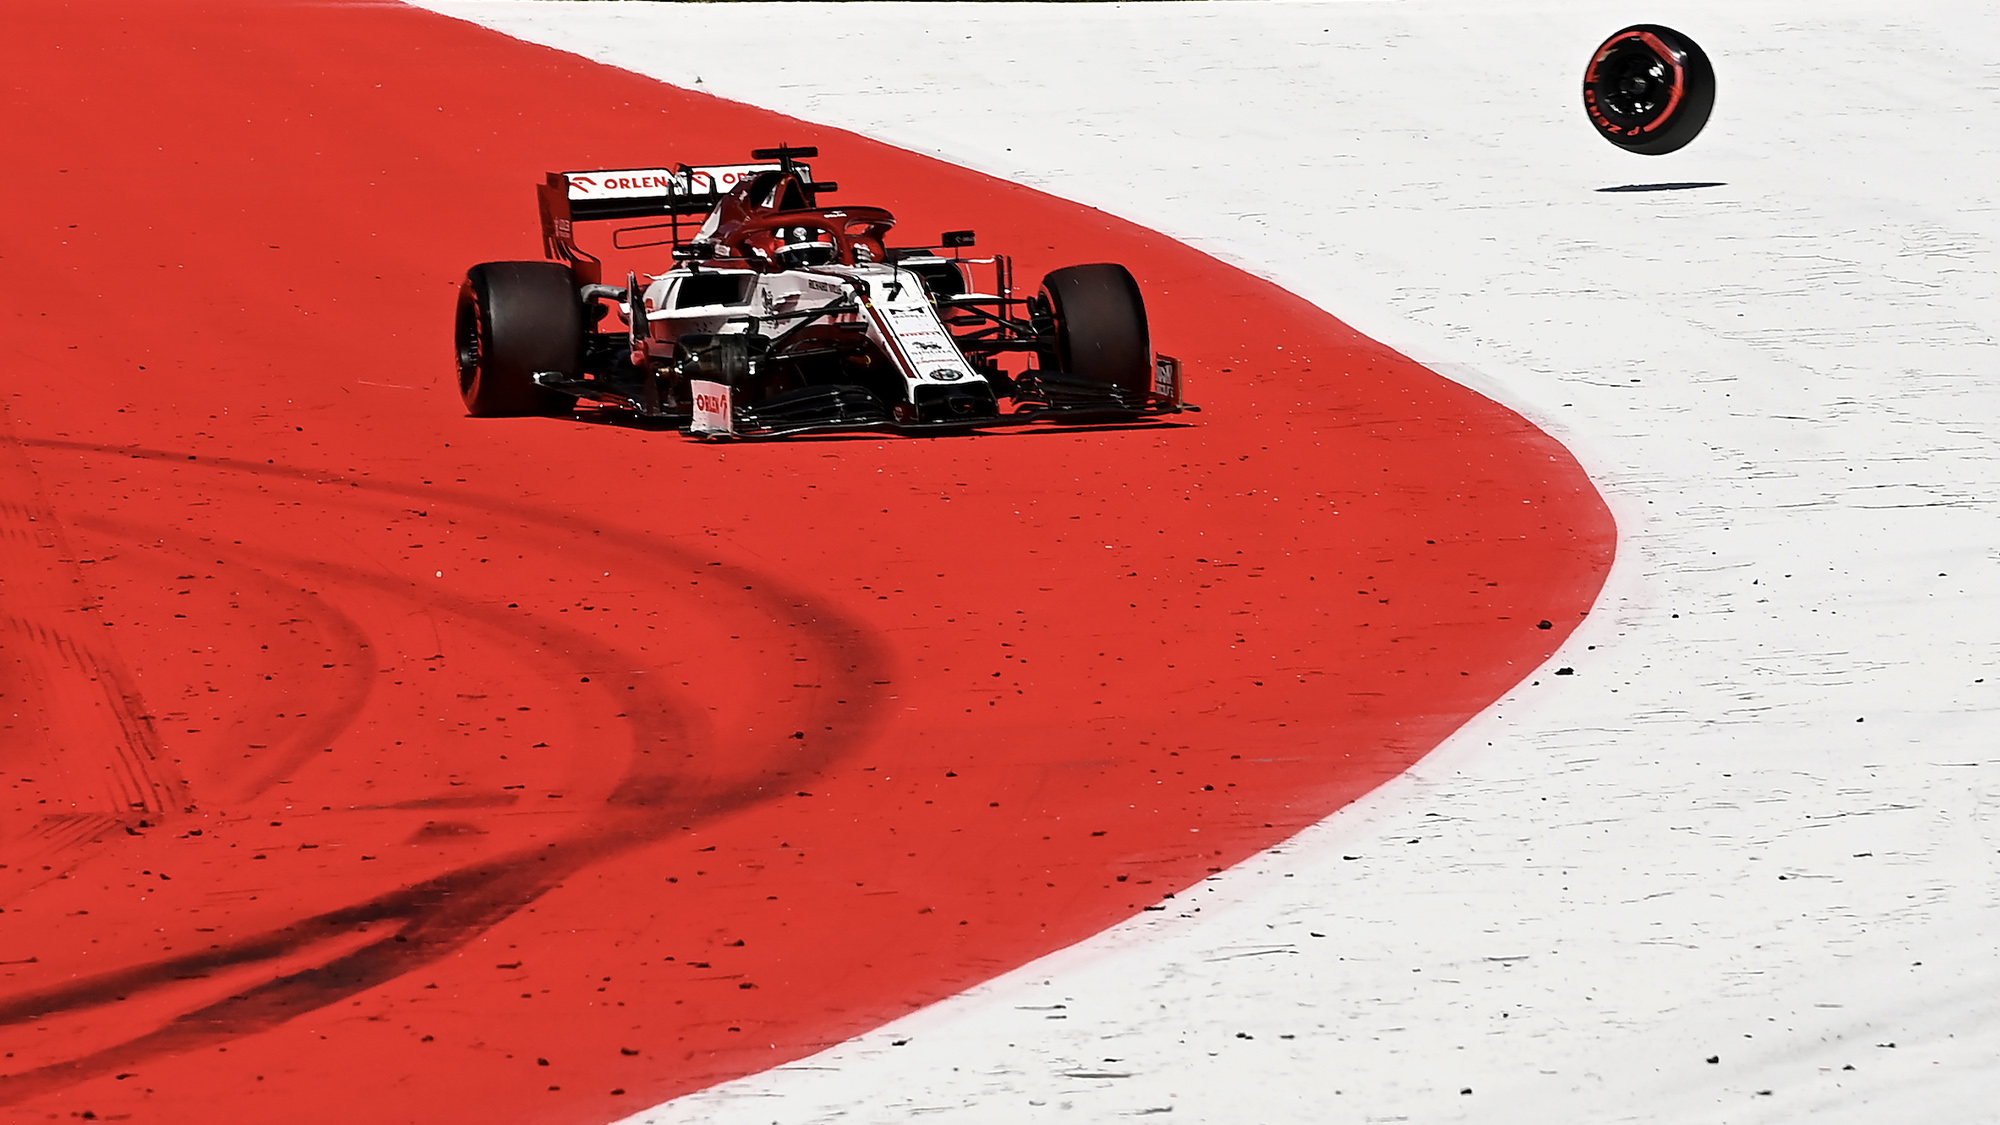 Kimi Raikkonen's Alfa Romeo loses its right front wheel at the 2020 austrian grand prix